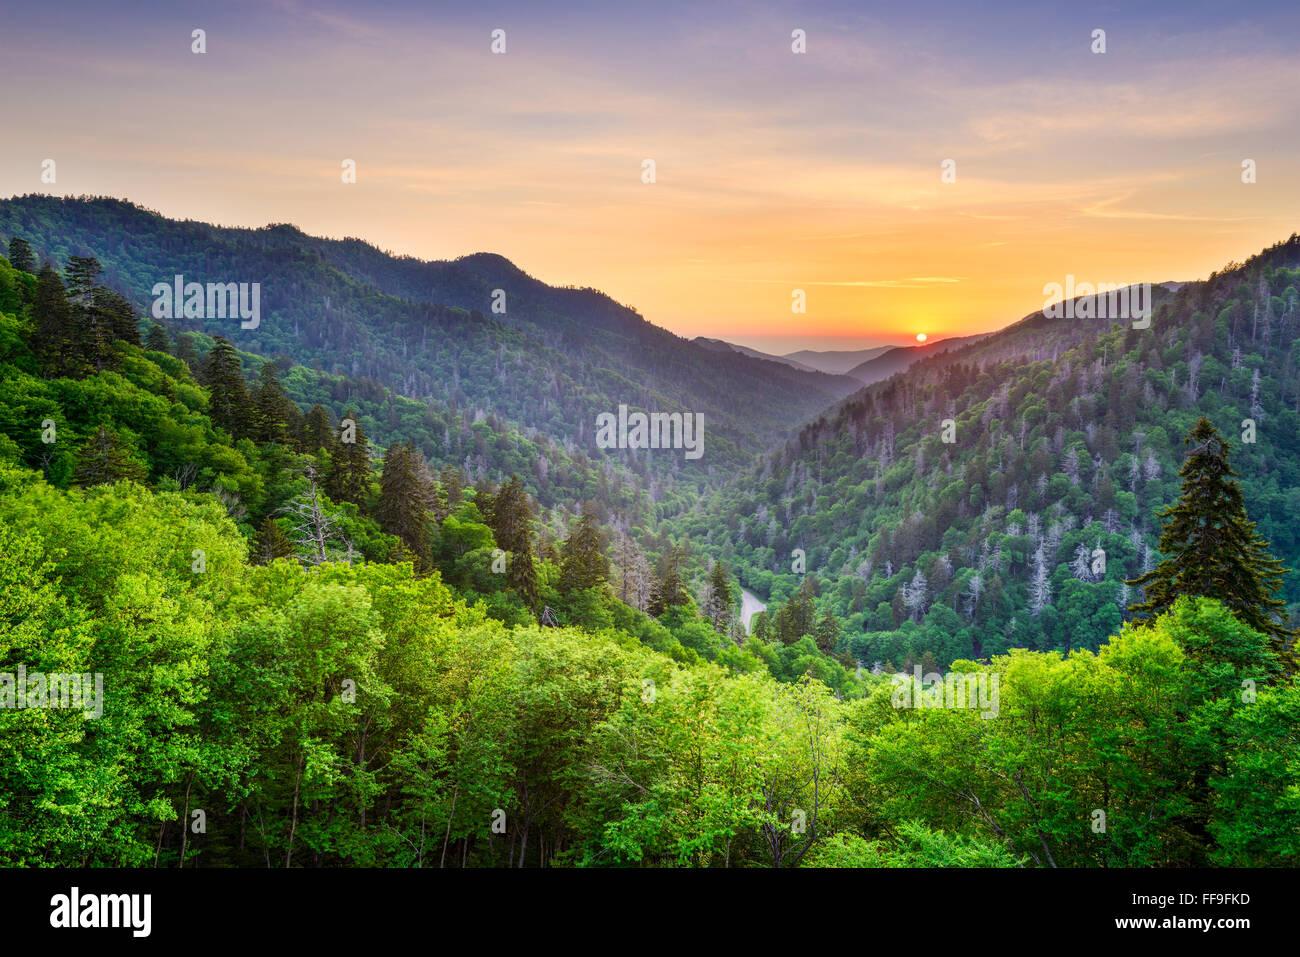 Newfound Gap in the Smoky Mountains, Tennessee, USA. - Stock Image